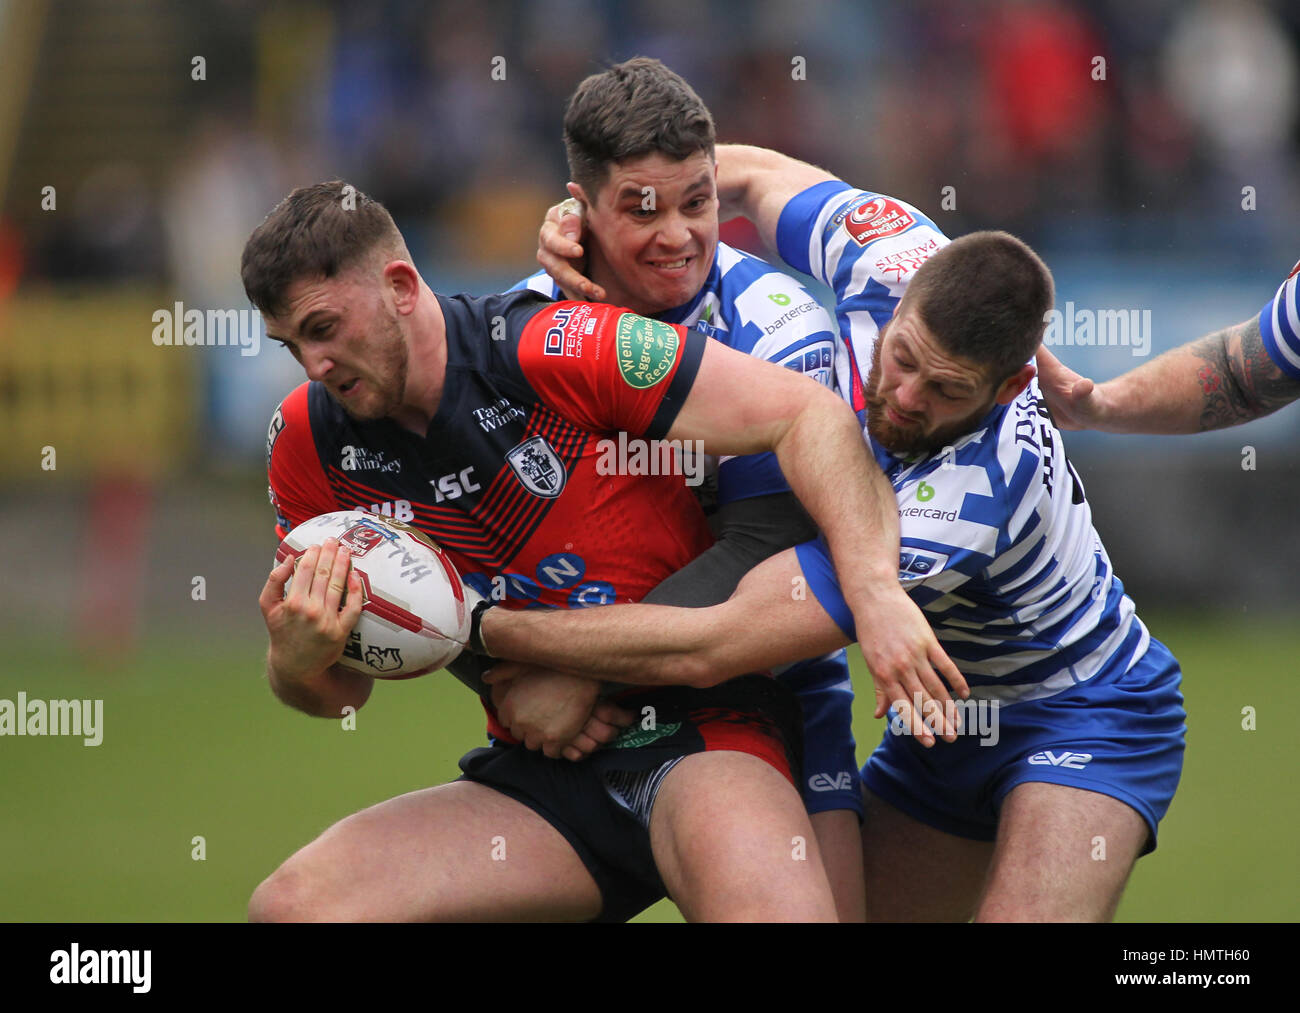 Die Shay Stadium, UK. 5. Februar 2017. Shay Stadion, Halifax, West Yorkshire 5. Februar 2017. Halifax V Featherstone Stockbild